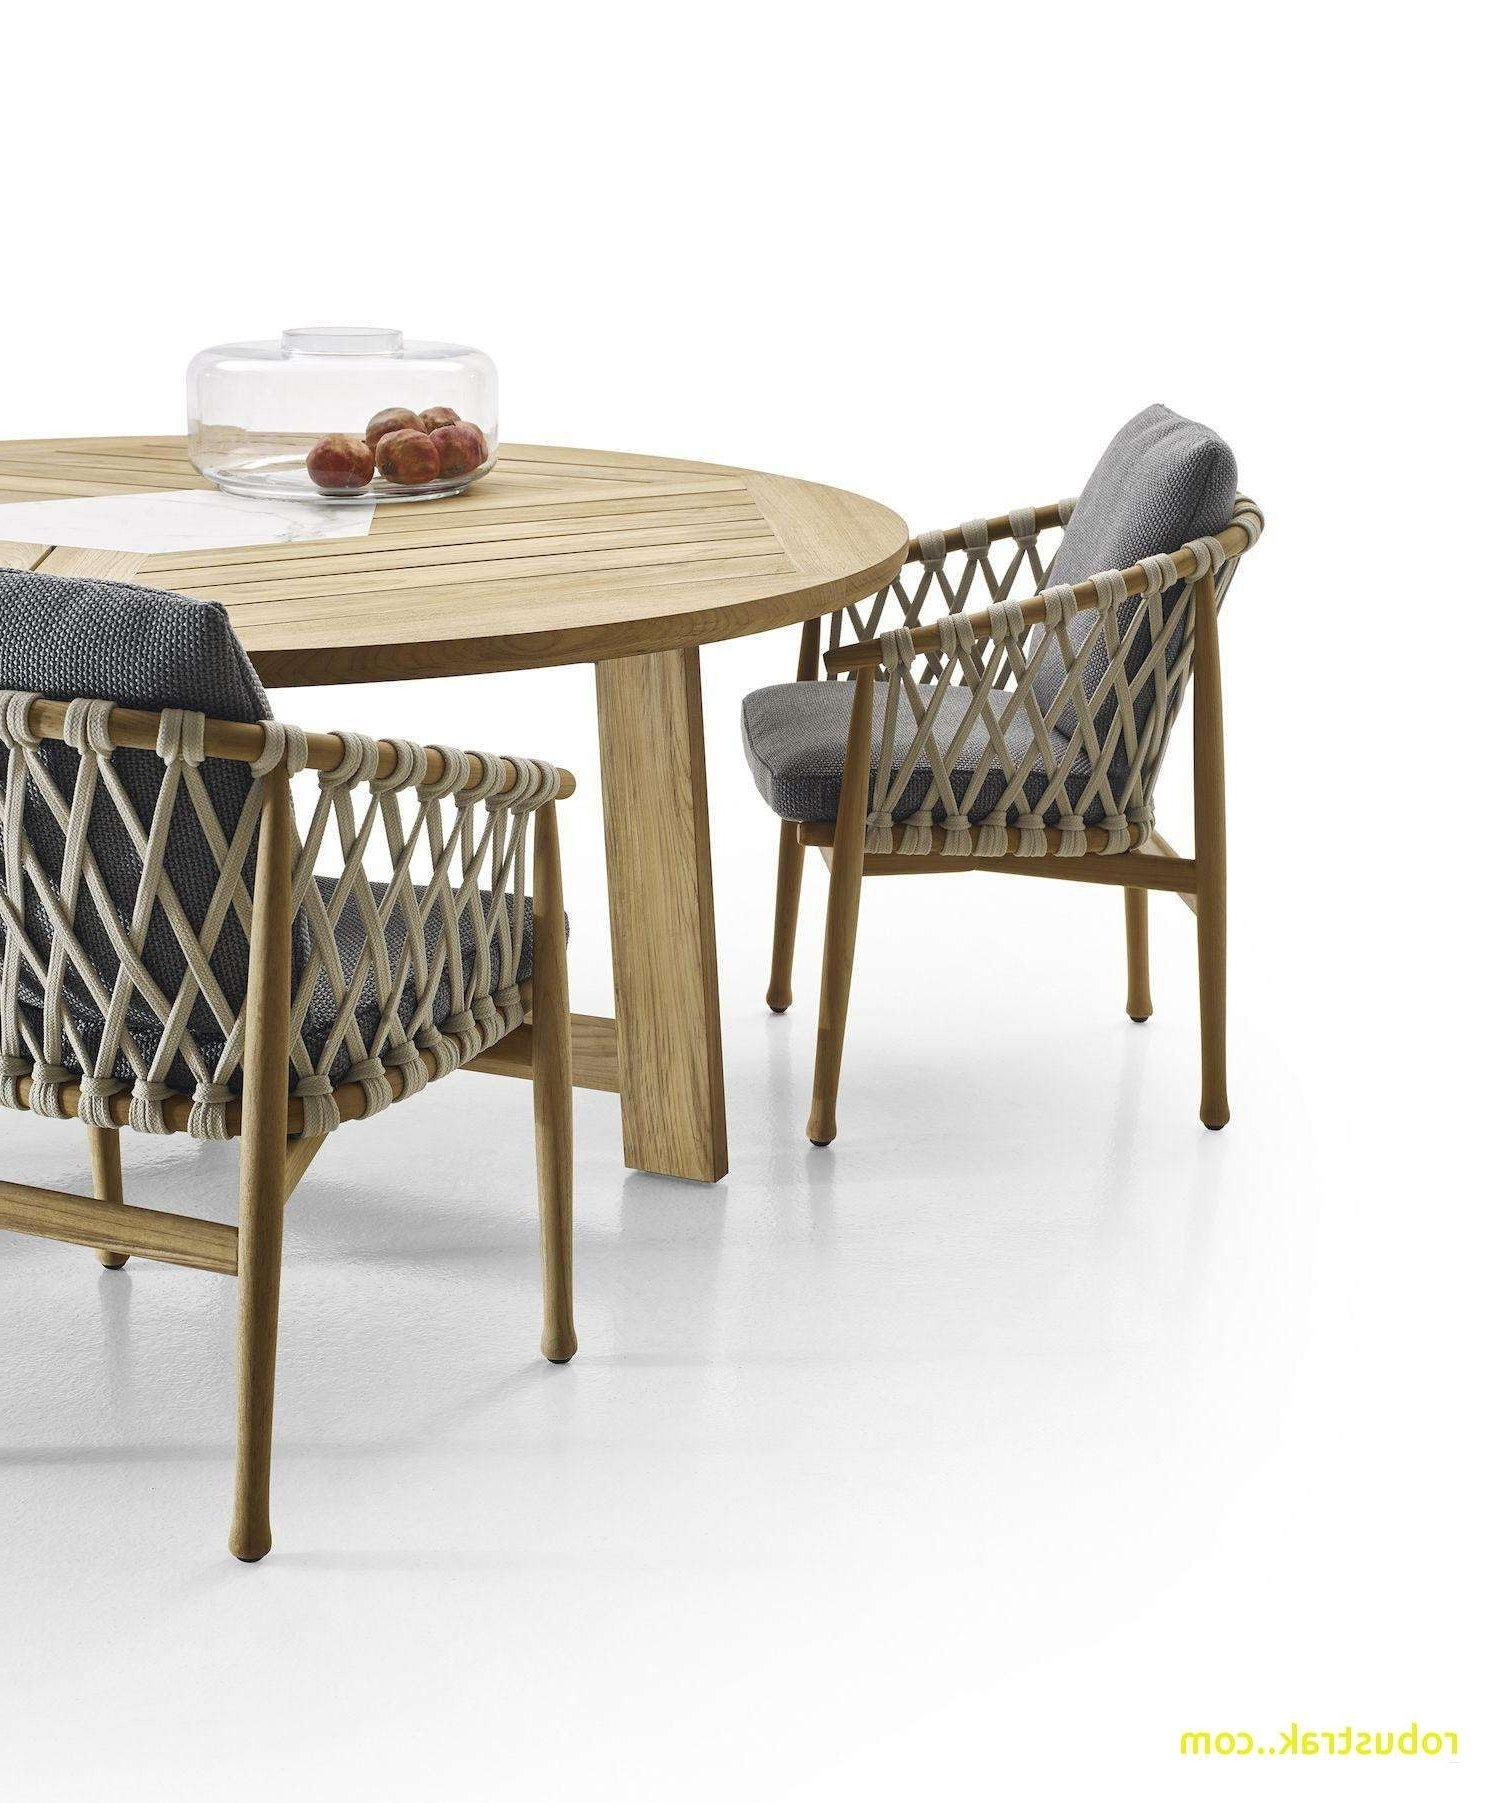 Well Known Caira 9 Piece Extension Dining Sets Pertaining To The 21 New Pedestals For Dining Tables – Welovedandelion (View 23 of 25)